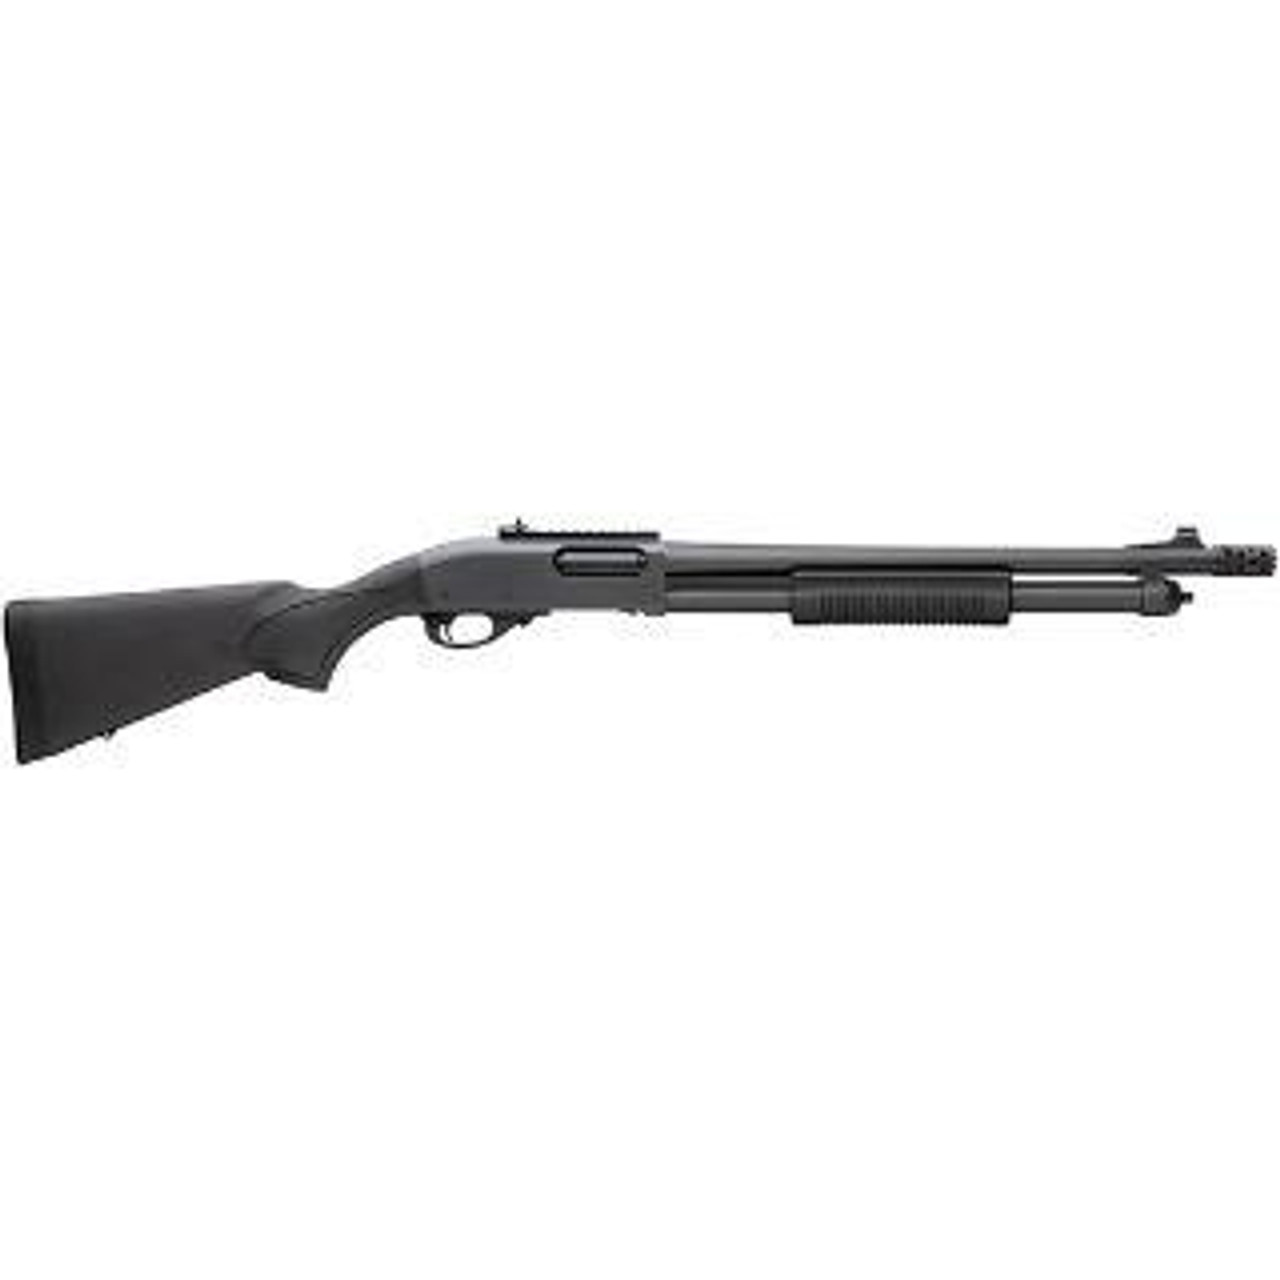 Remington 870 Express Tactical - California Legal